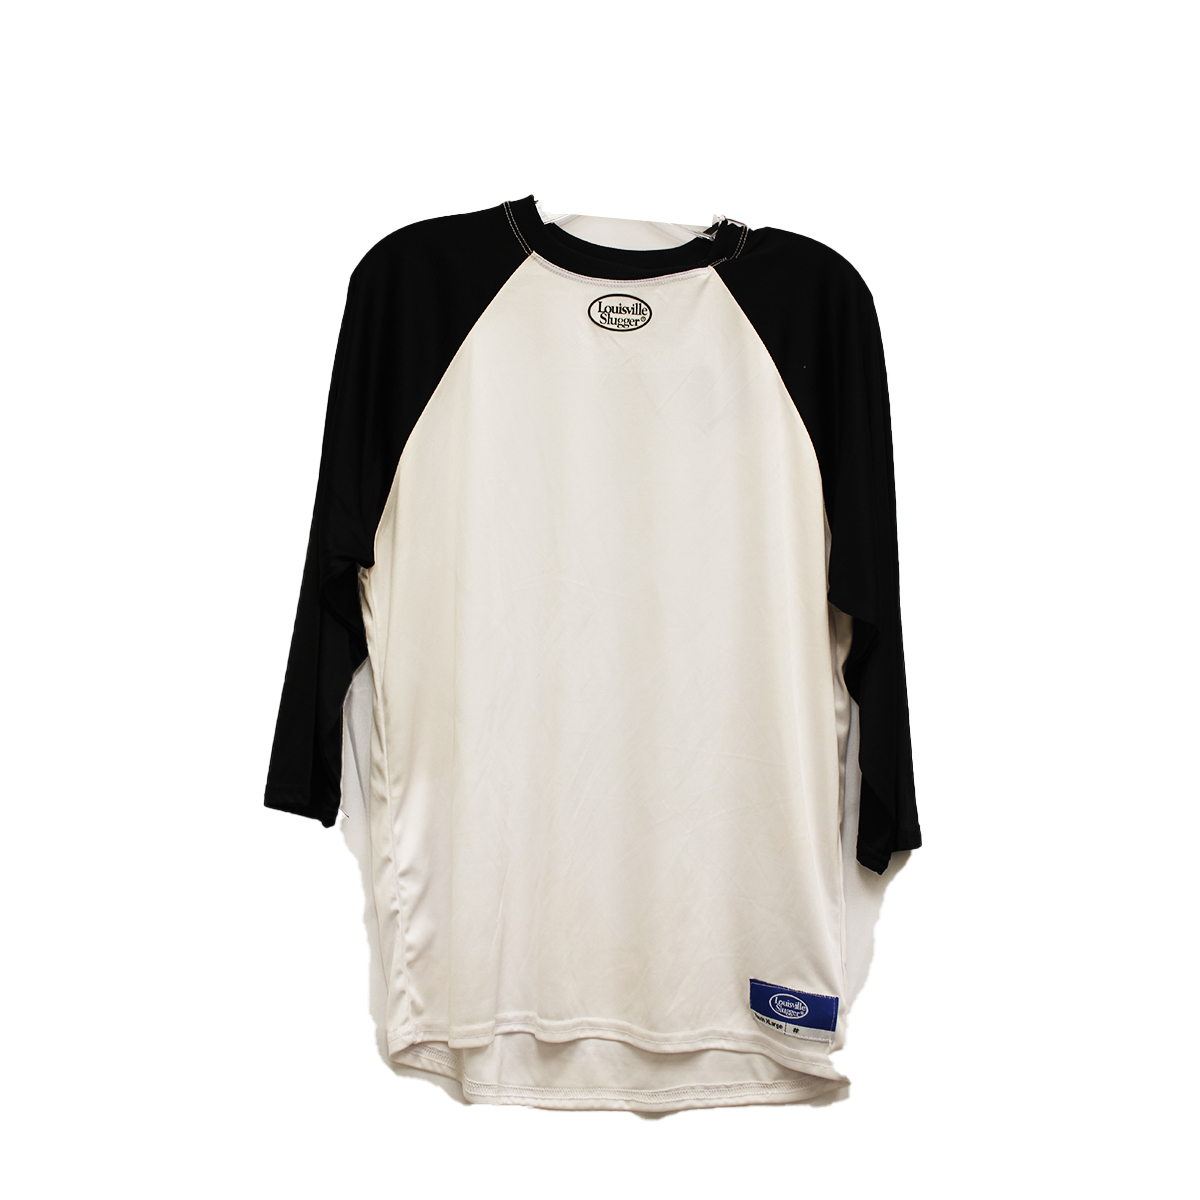 Youth 3/4 Shirt, White/Black/Gray/Silver, swatch